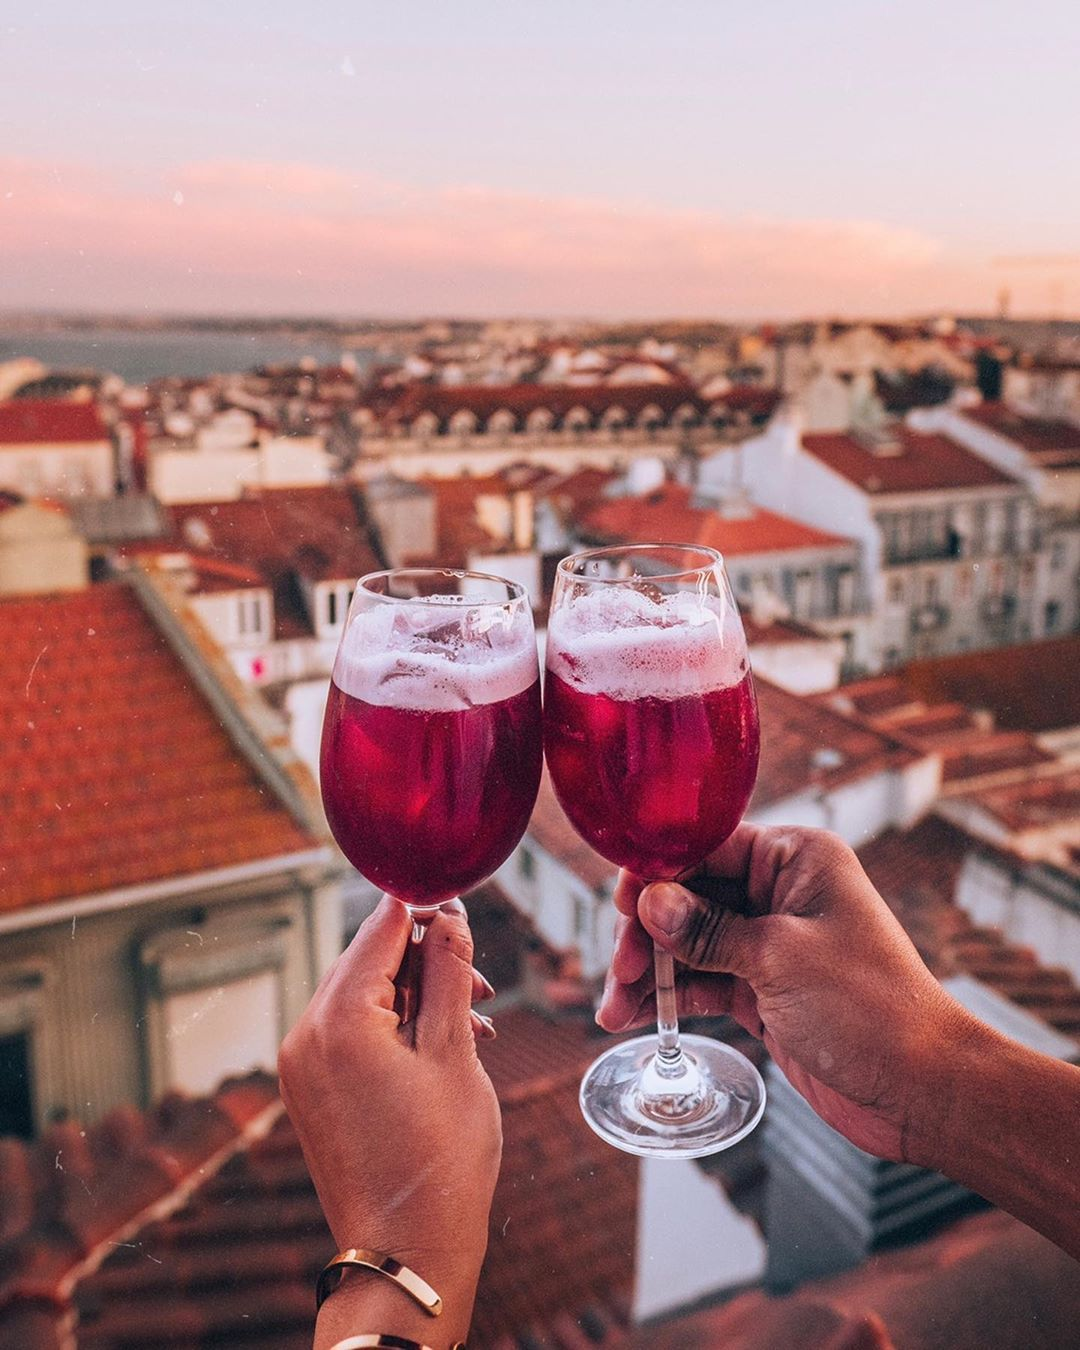 Cherrie Almonte Travel Style On Instagram Cheers To The Weekend And Cheers To This Beautiful Rooftop View From Thelumiares Who S Down For Some Happy Ho I 2020